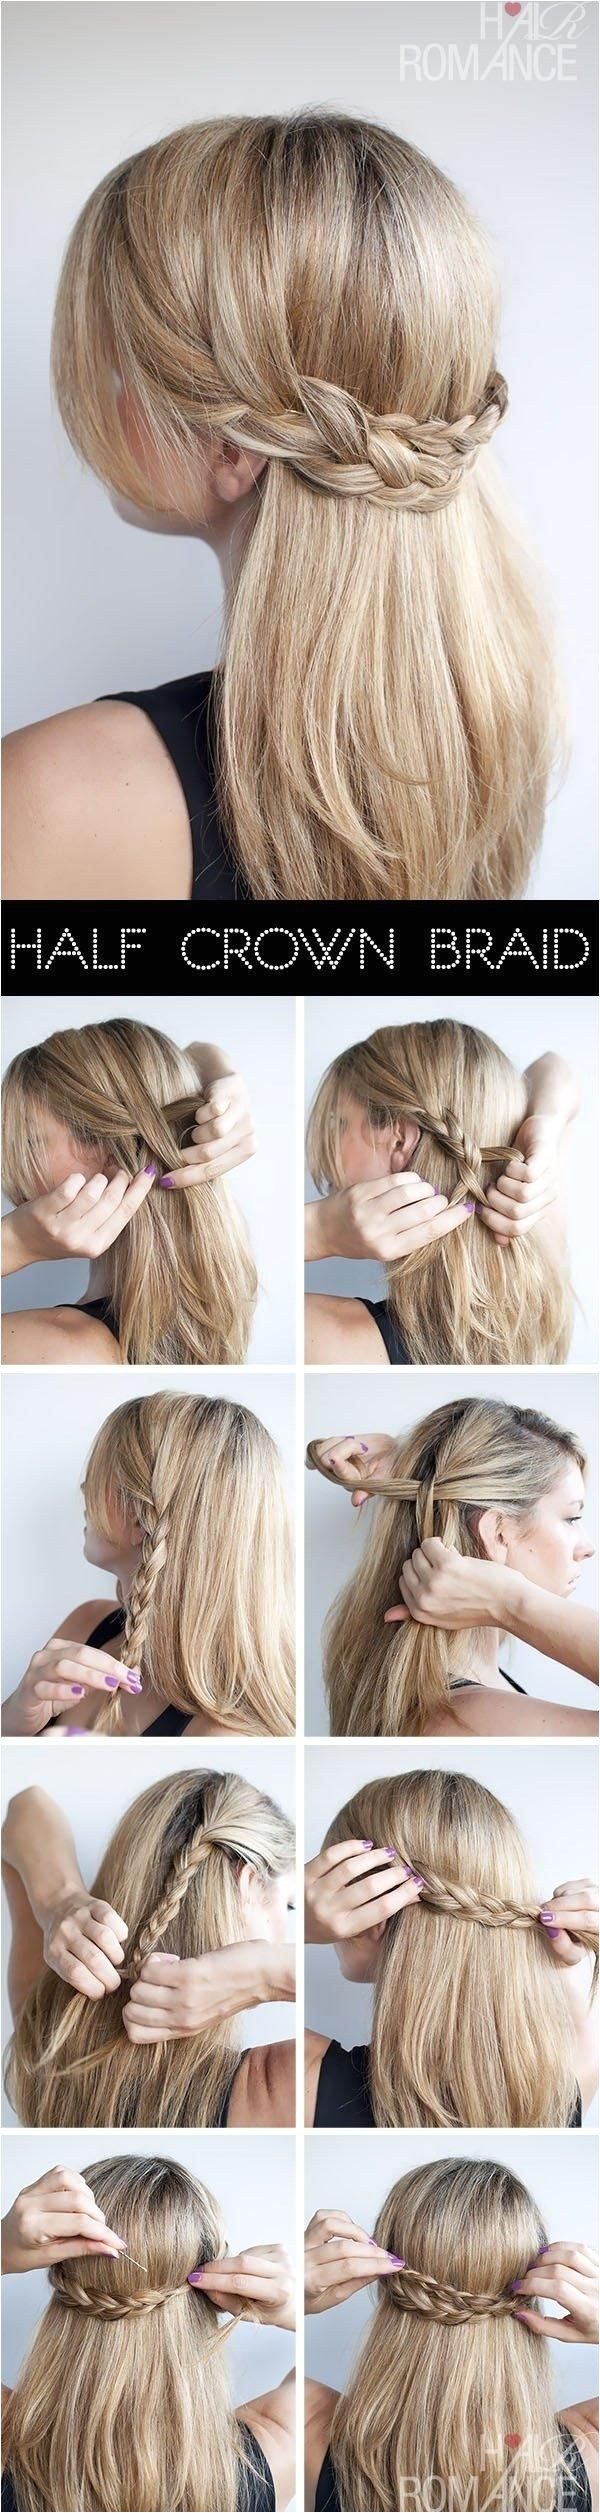 15 Easy No Heat Hairstyles For Dirty Hair Beauty Tips Pinterest